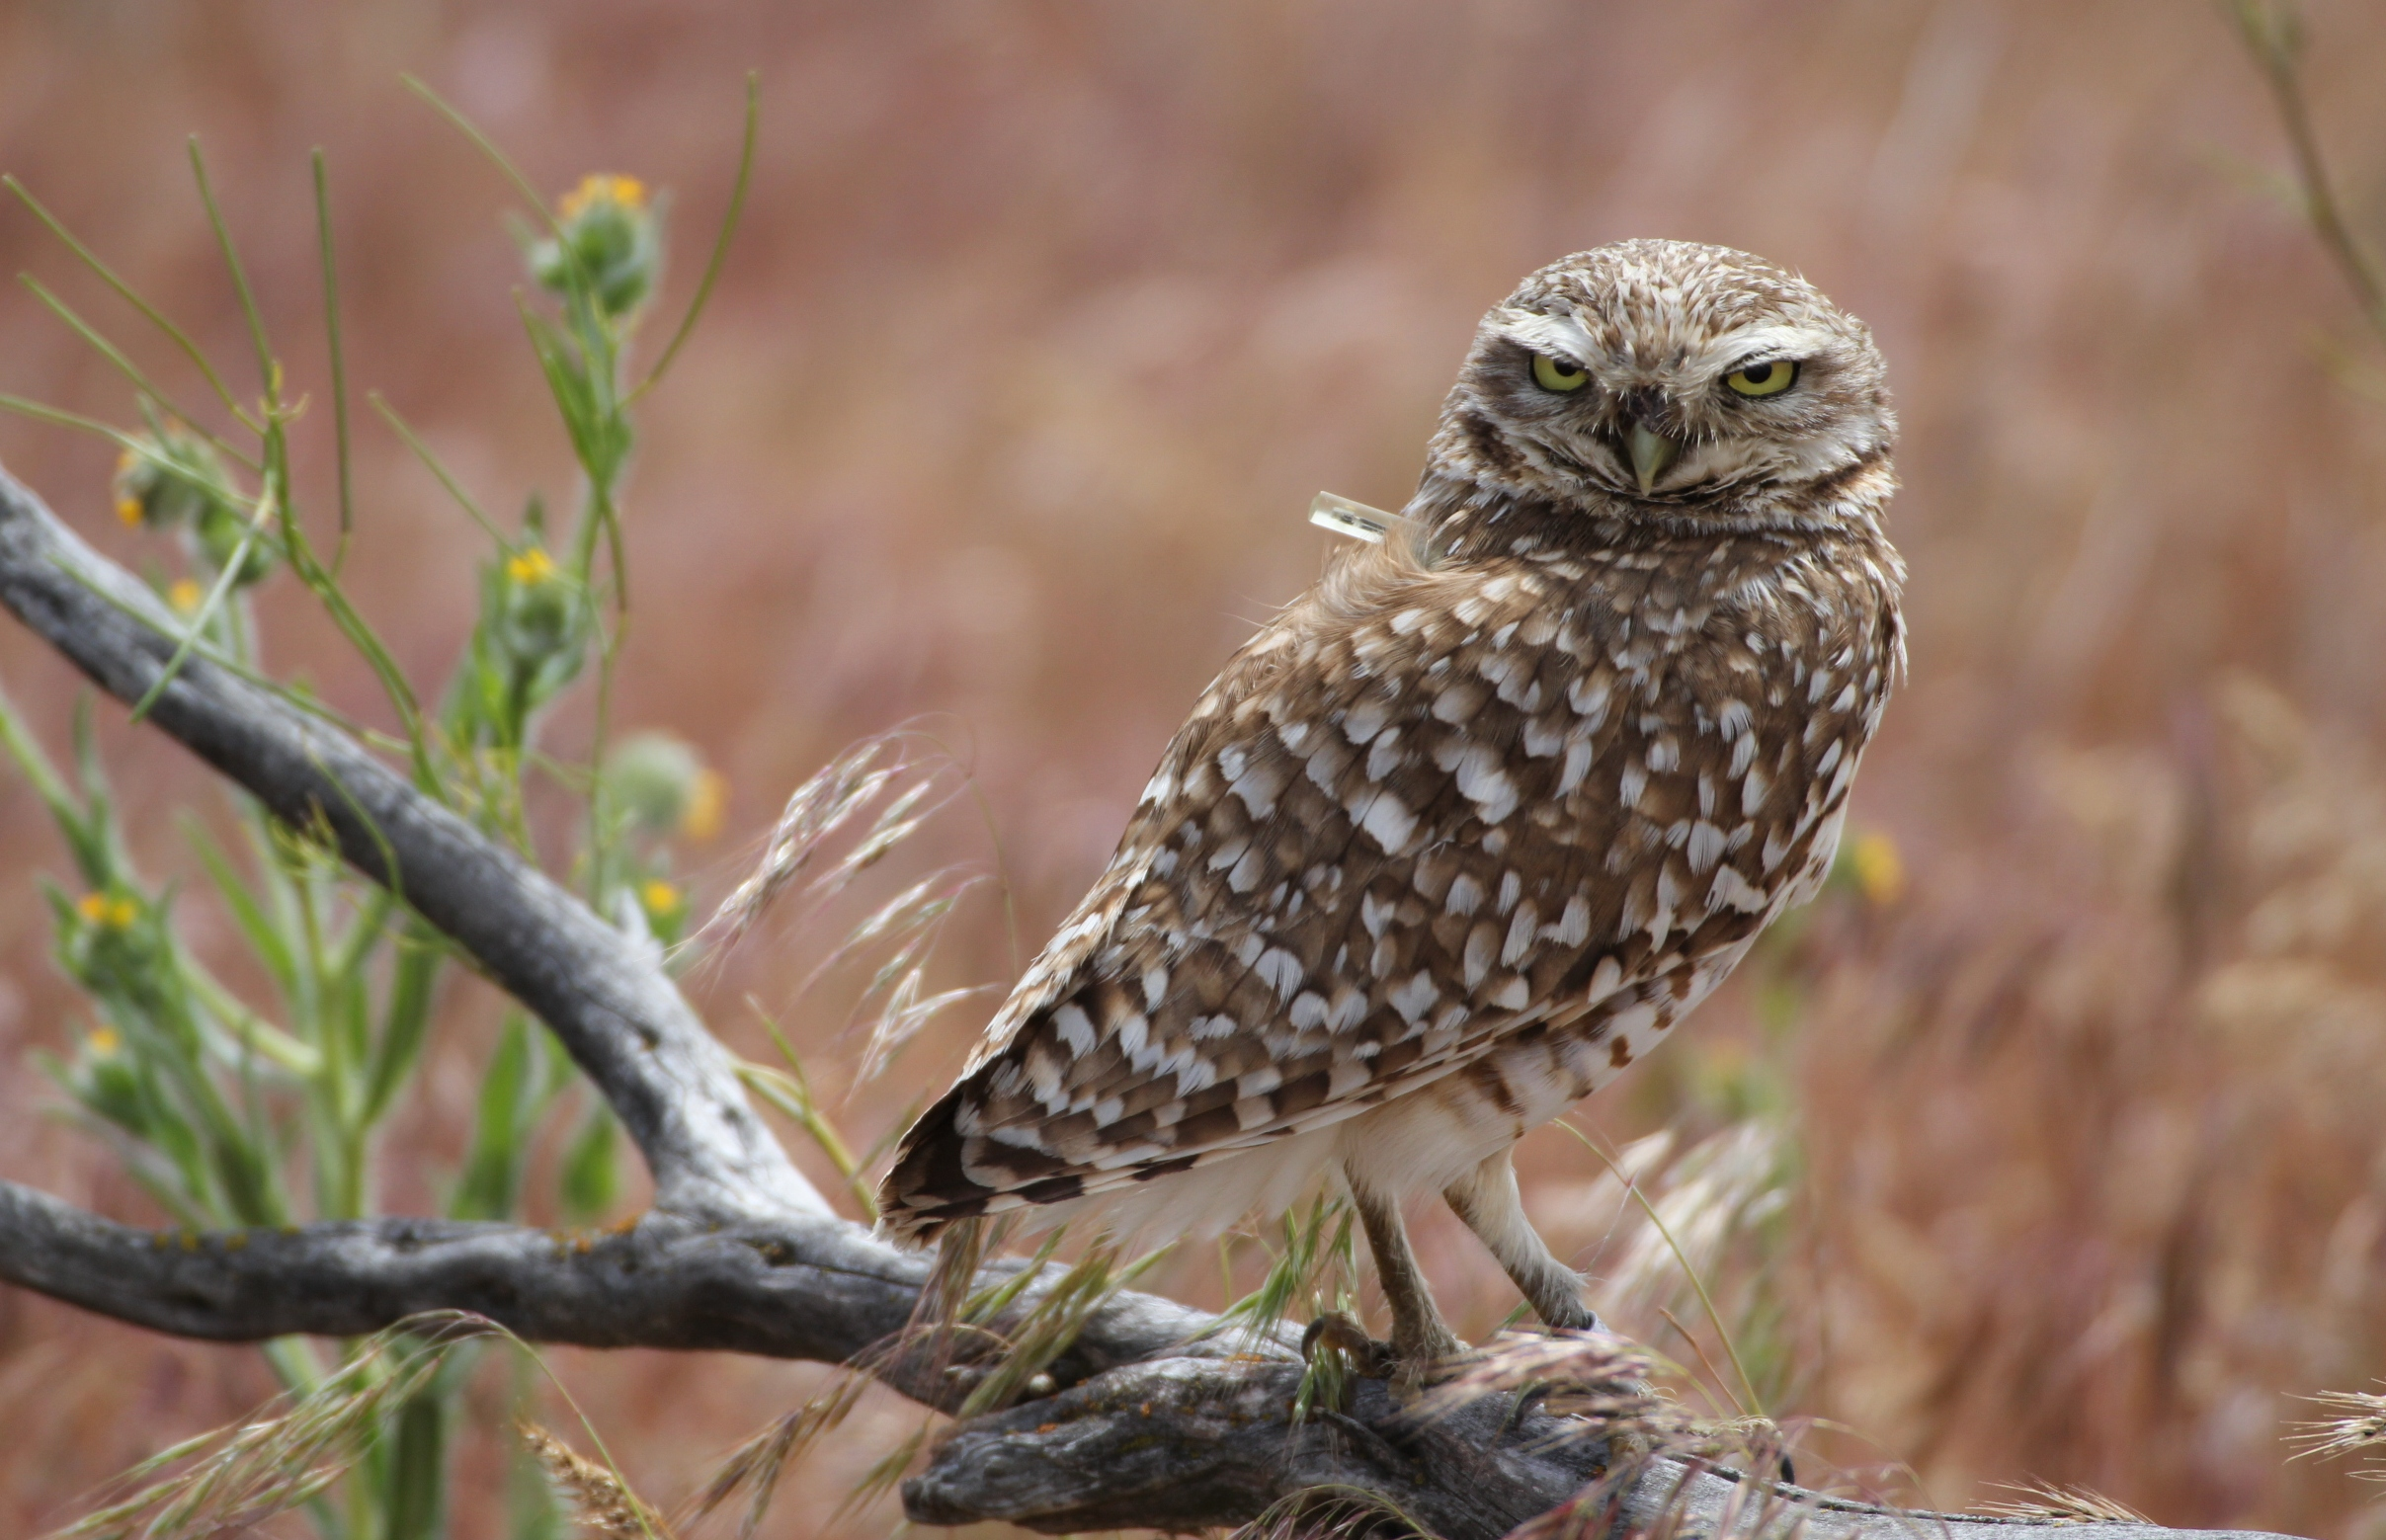 Burrowing Owl w geolocator - screensaver- 5-14-2011 G. Green.JPG